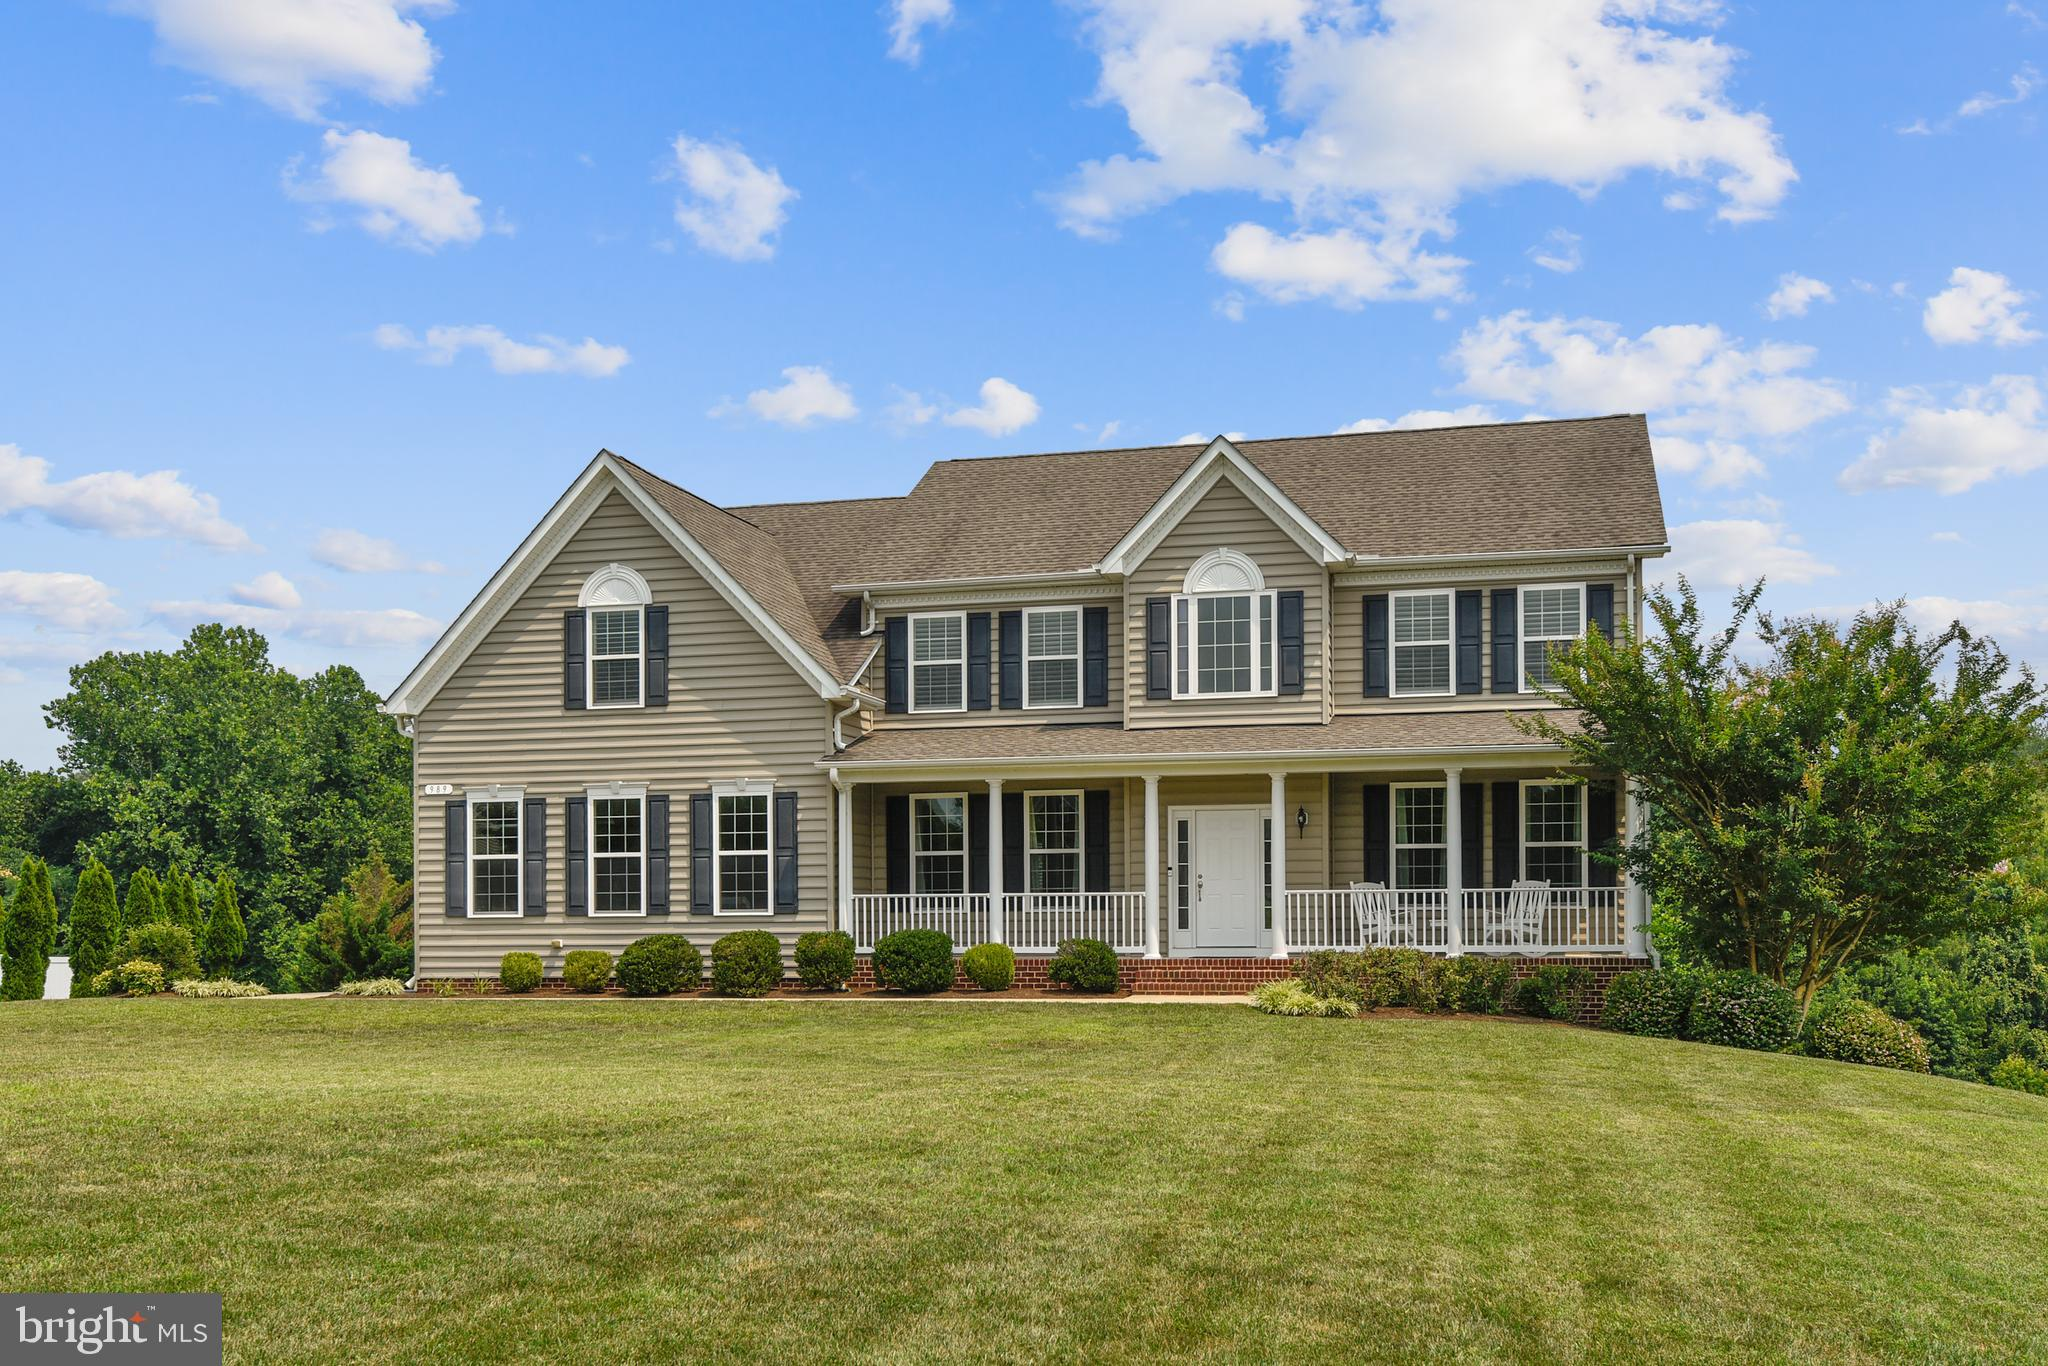 This home is in excellent condition and shows like a model home.  The two-story foyer with all the d